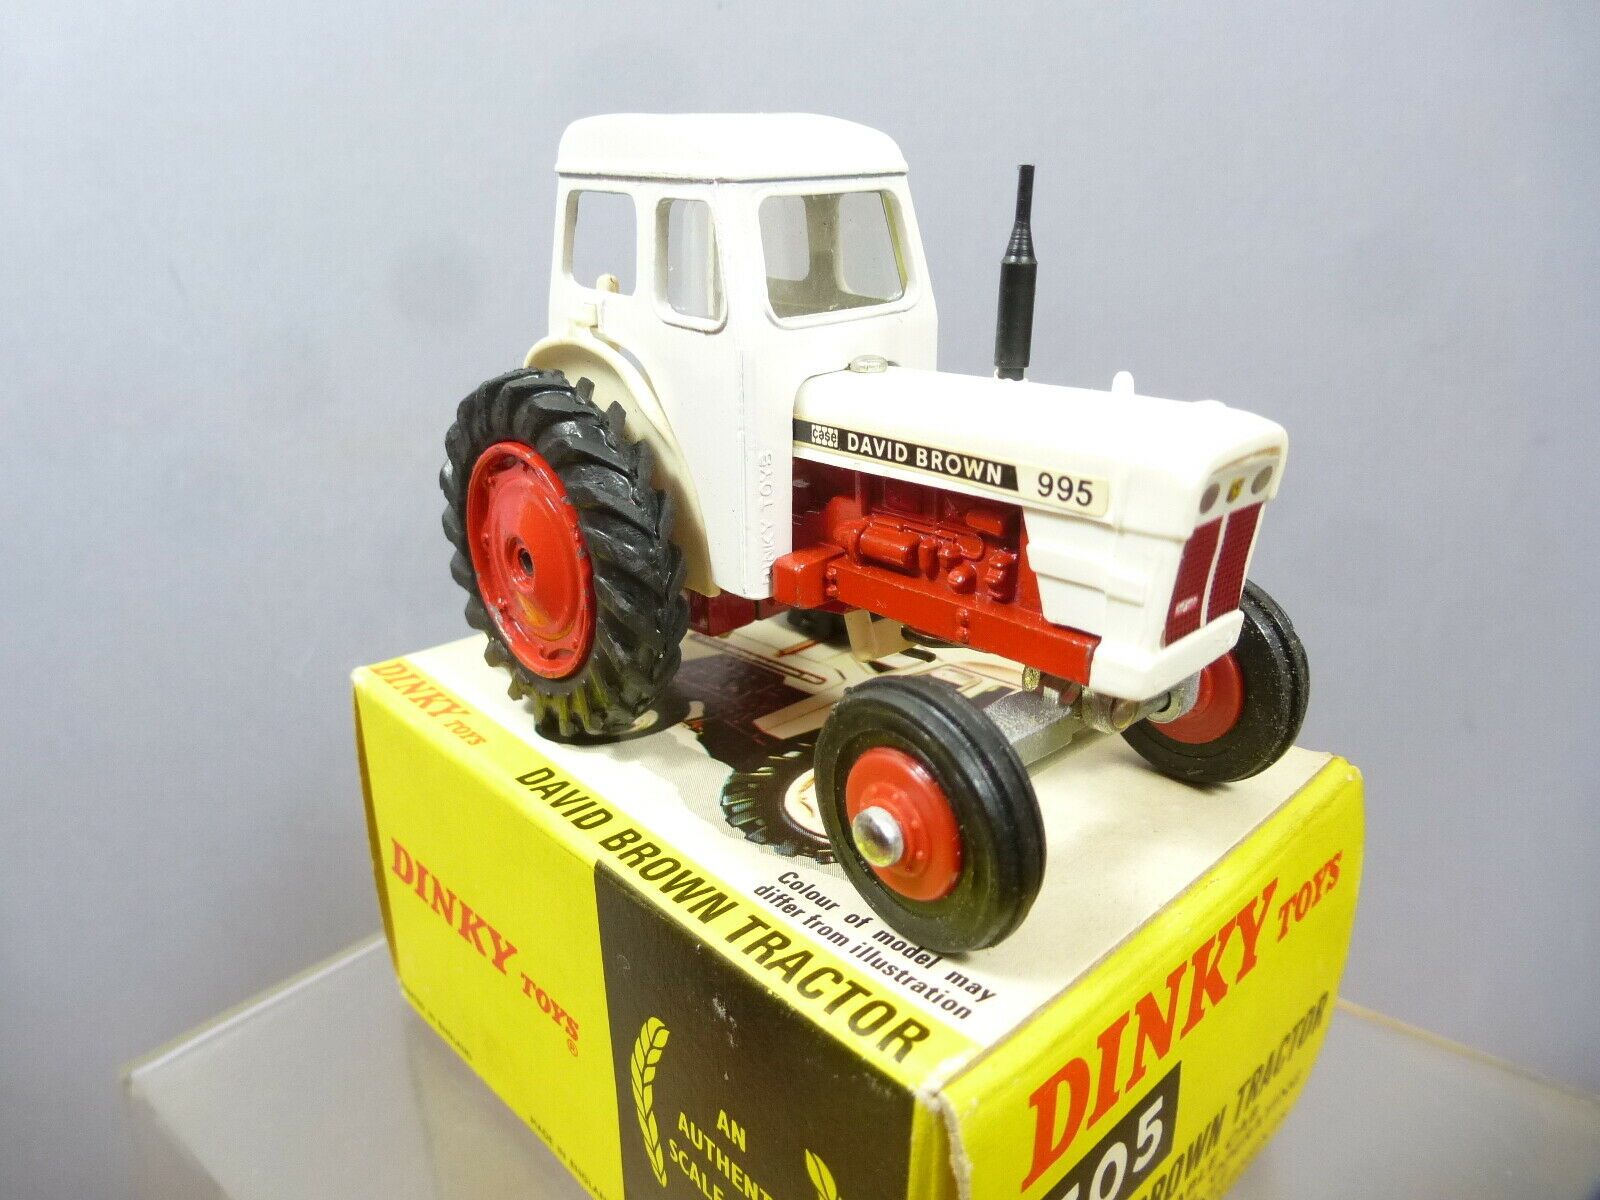 DINKY TOYS   PROMOTIONAL MODEL  No.305   CASE  DAVID BROWN 995 TRACTOR   MIB